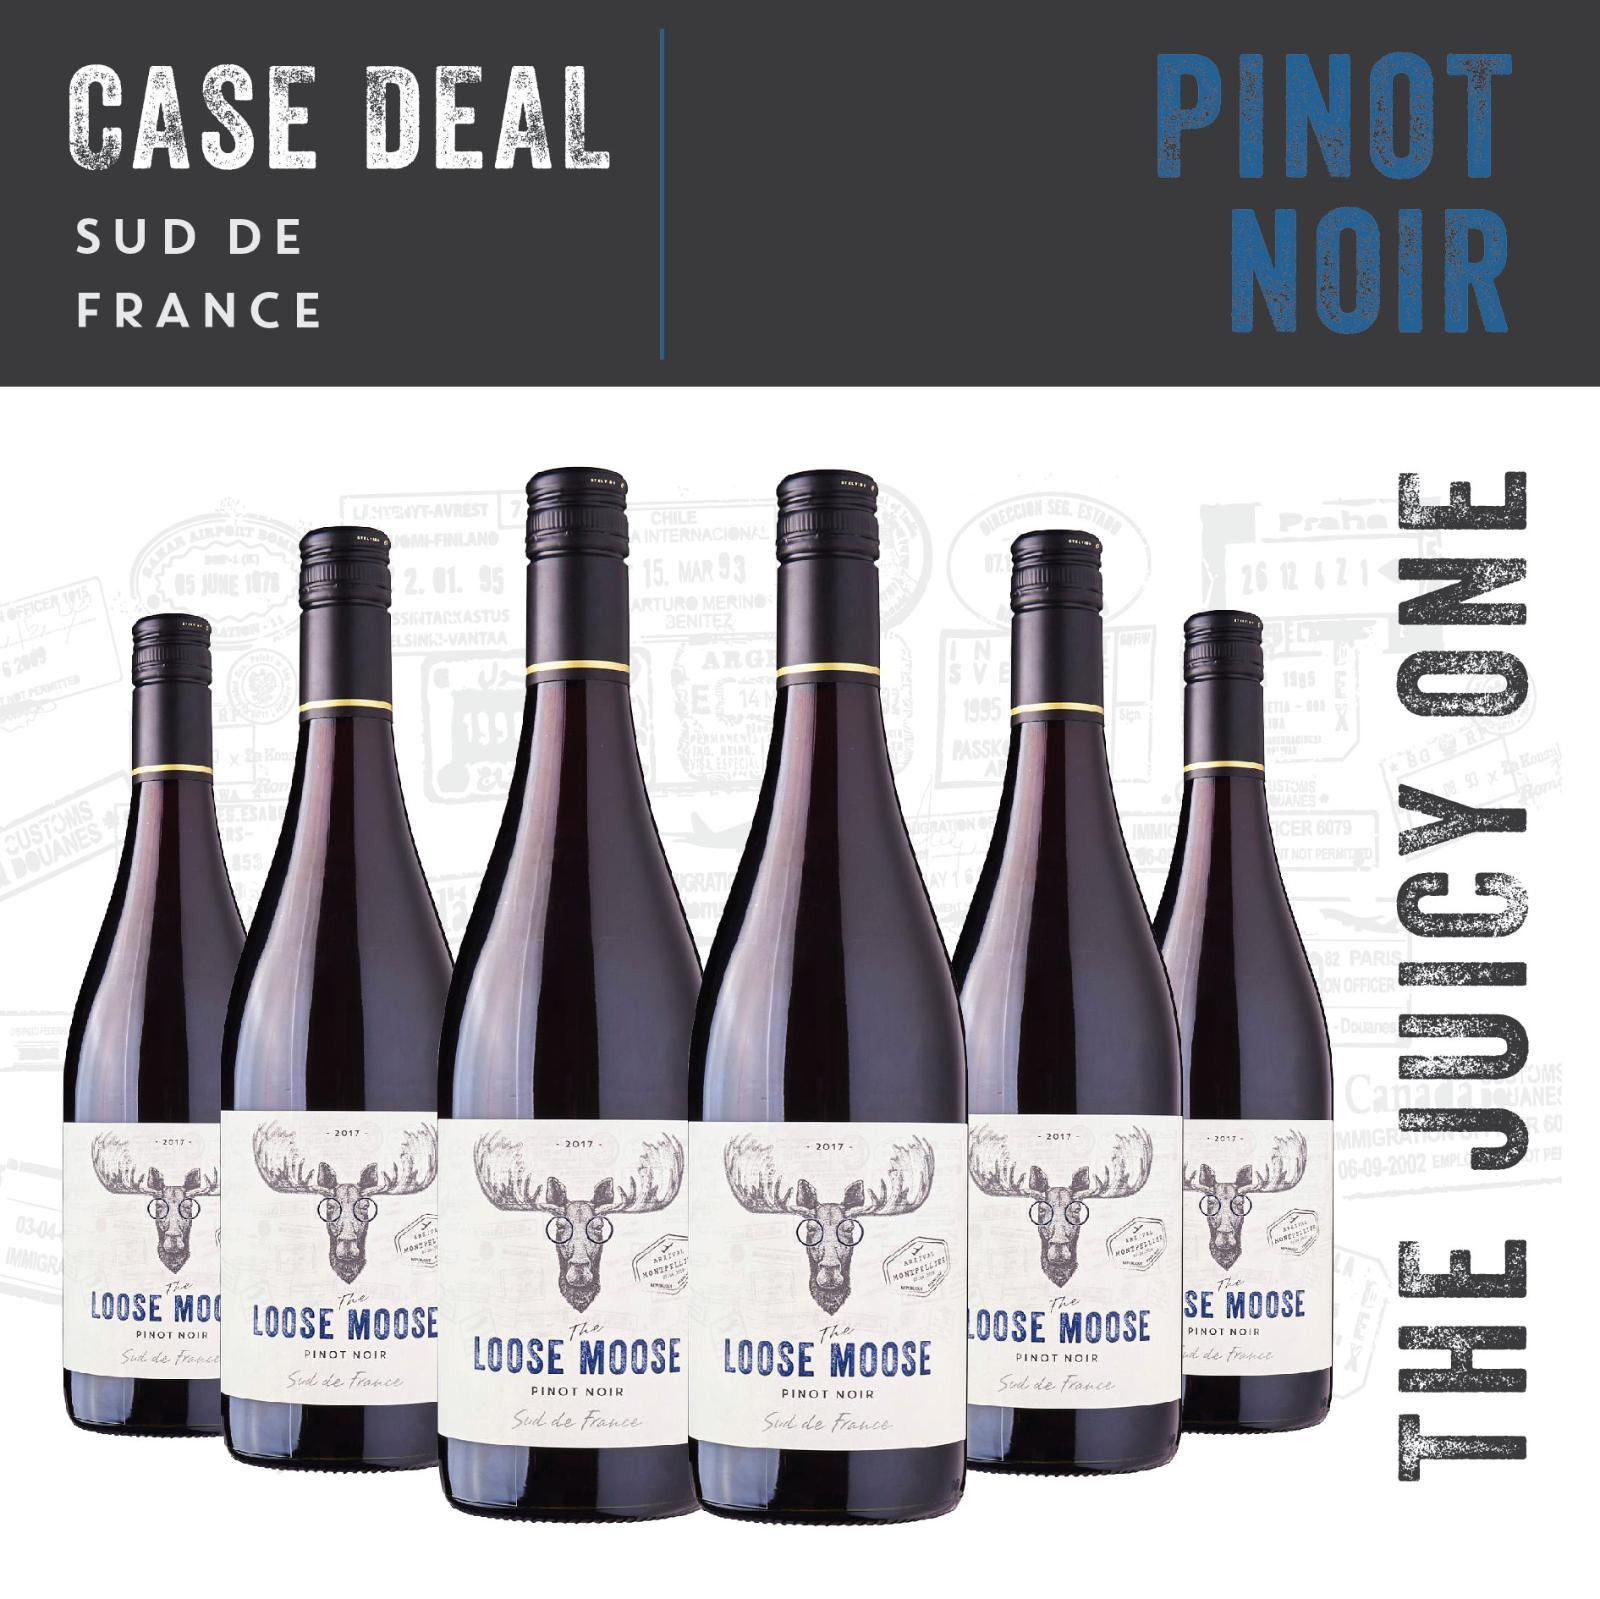 The Loose Moose Sud de France Pinot Noir Red Wine - Case